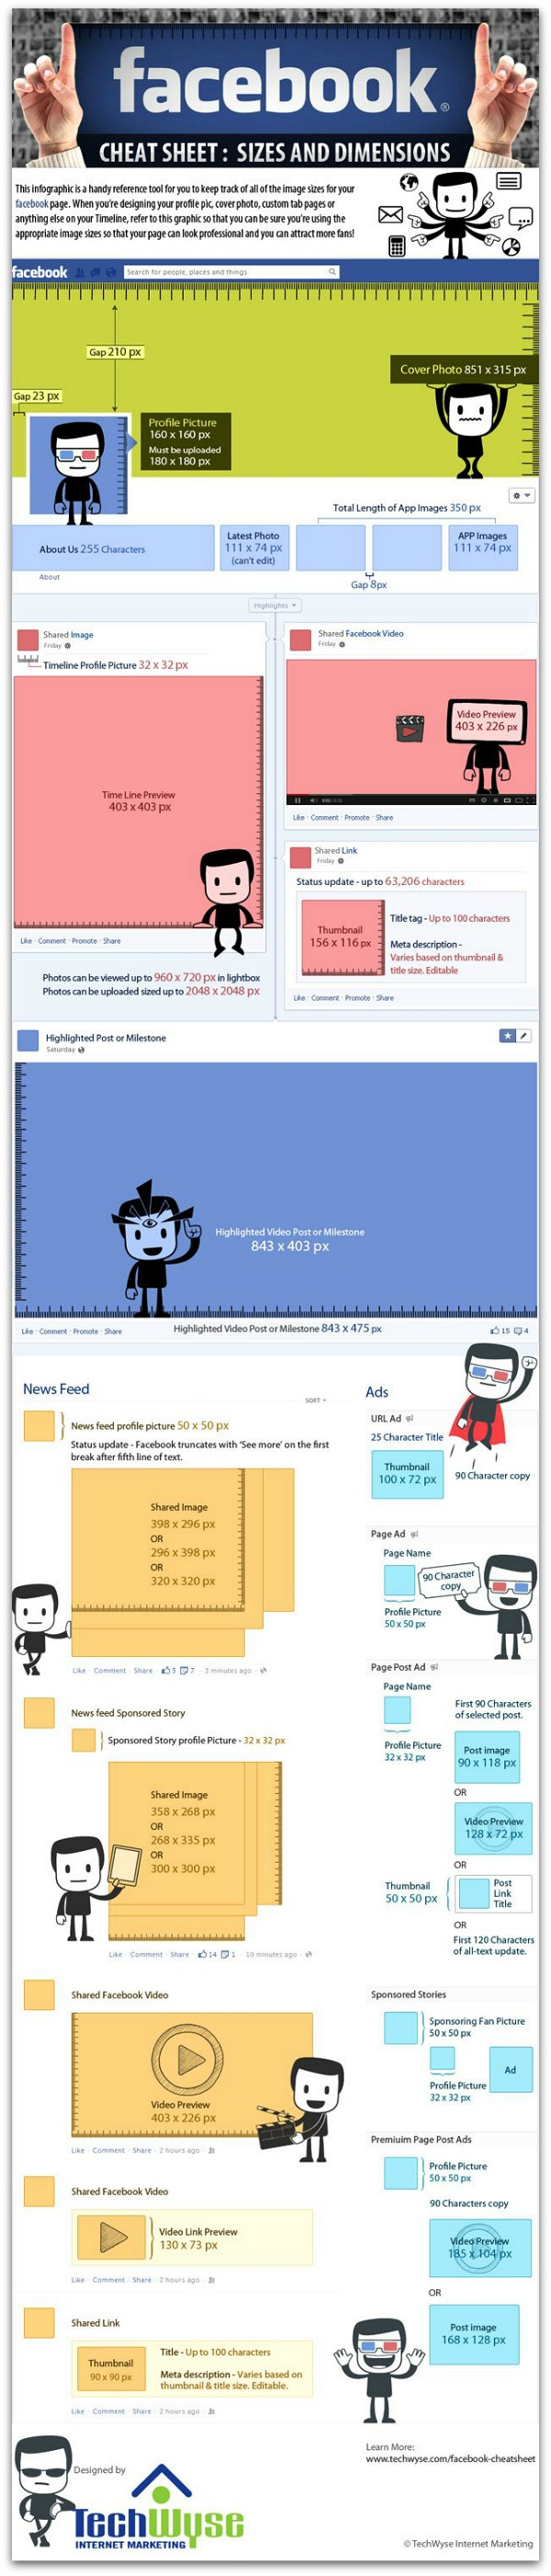 Facebook clipart sizes banner library library Image sizes on Facebook: A cheat sheet | Articles | Main banner library library